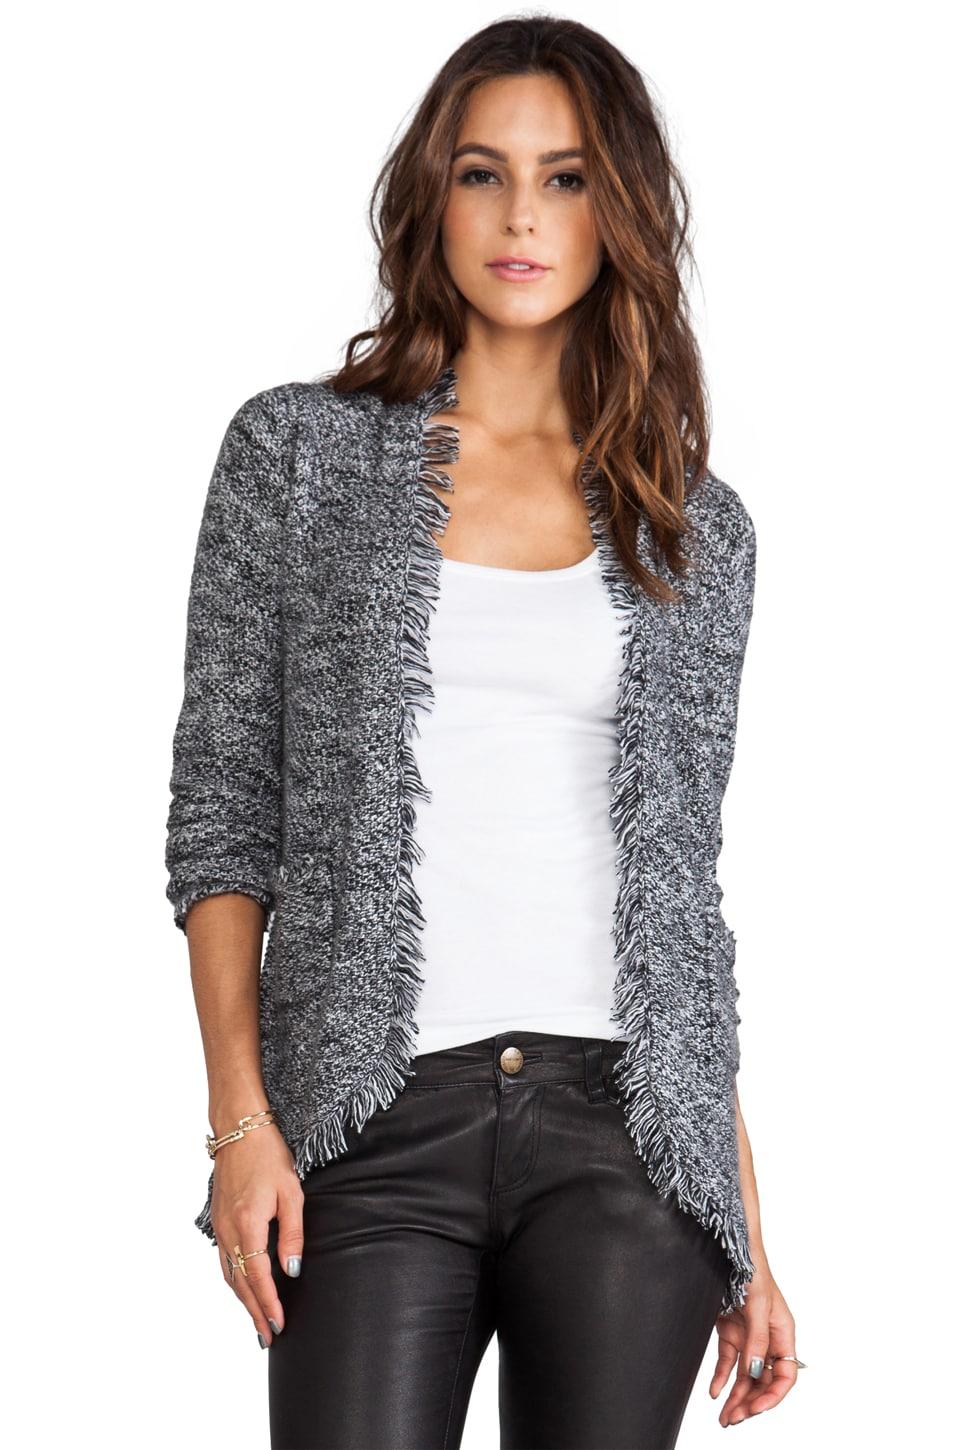 Autumn Cashmere Tweed Open Jacket in Ebony/Vanilla